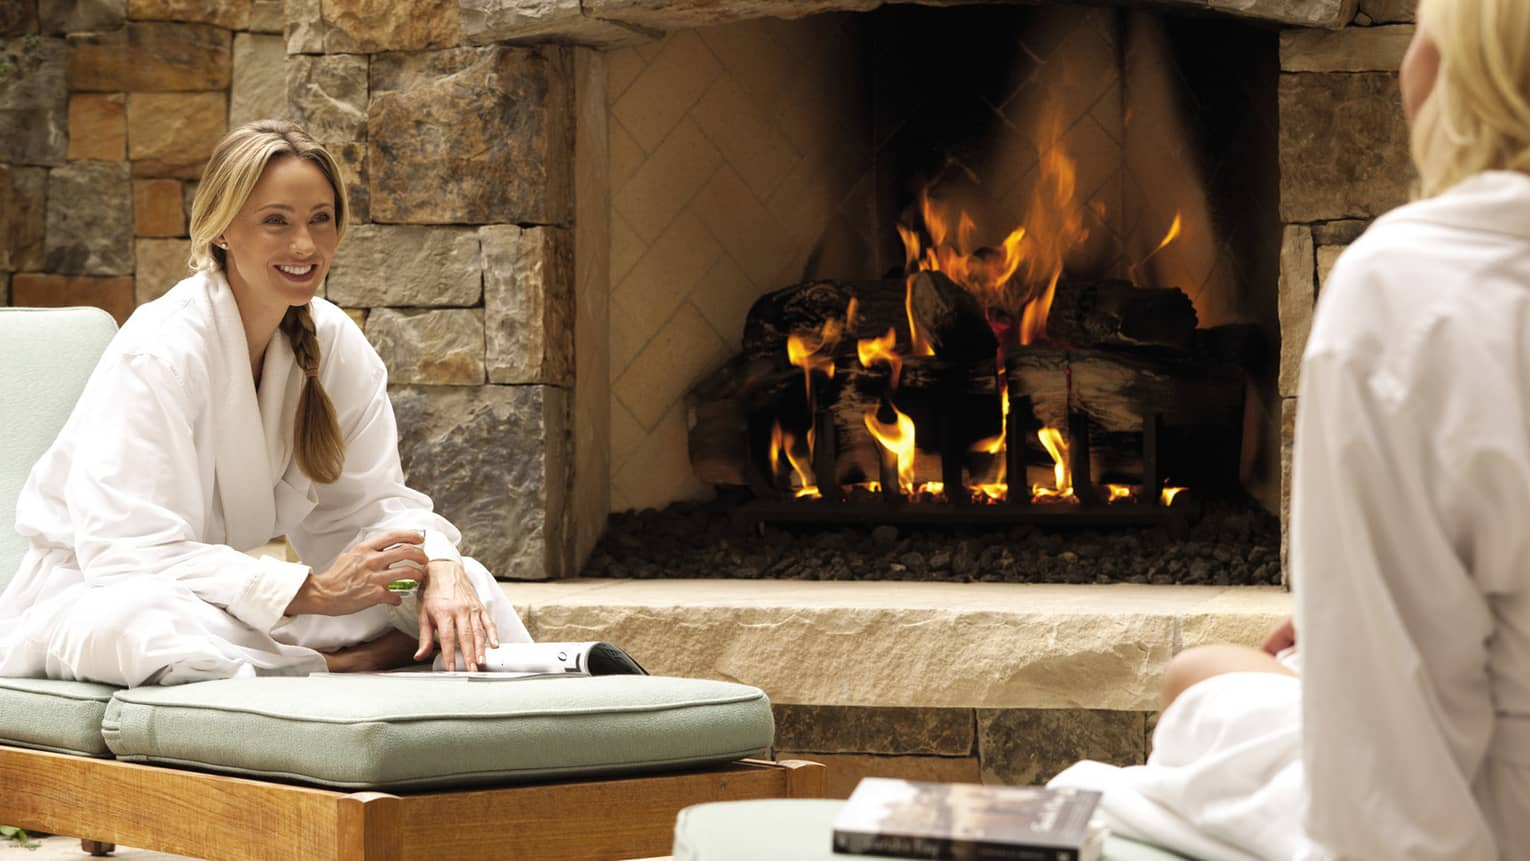 Two women lounge in spa robes by a fireplace.